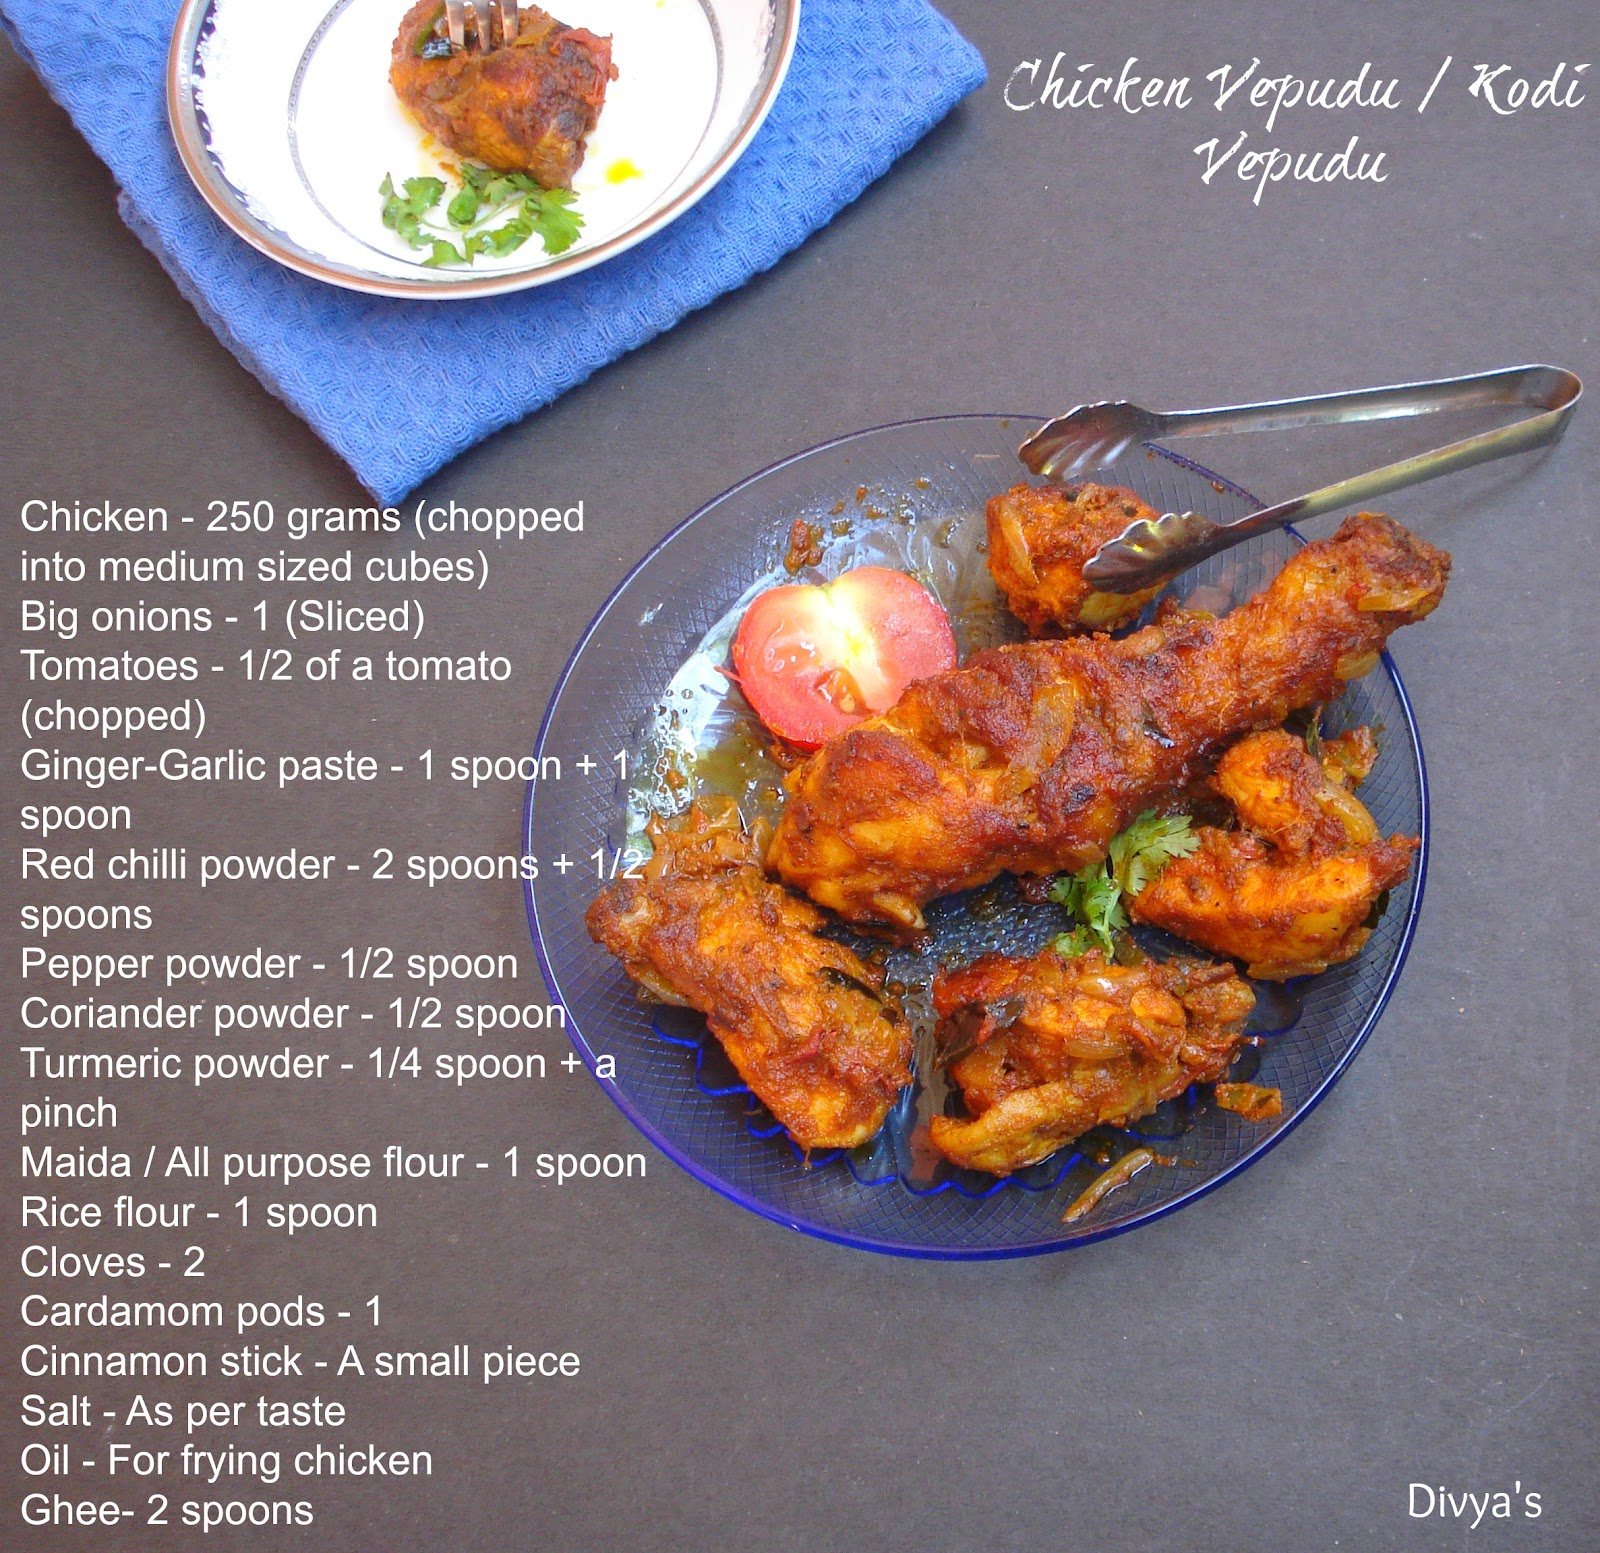 Chicken vepudu kodi vepudu fried chicken dry masala andhra delicious forumfinder Choice Image